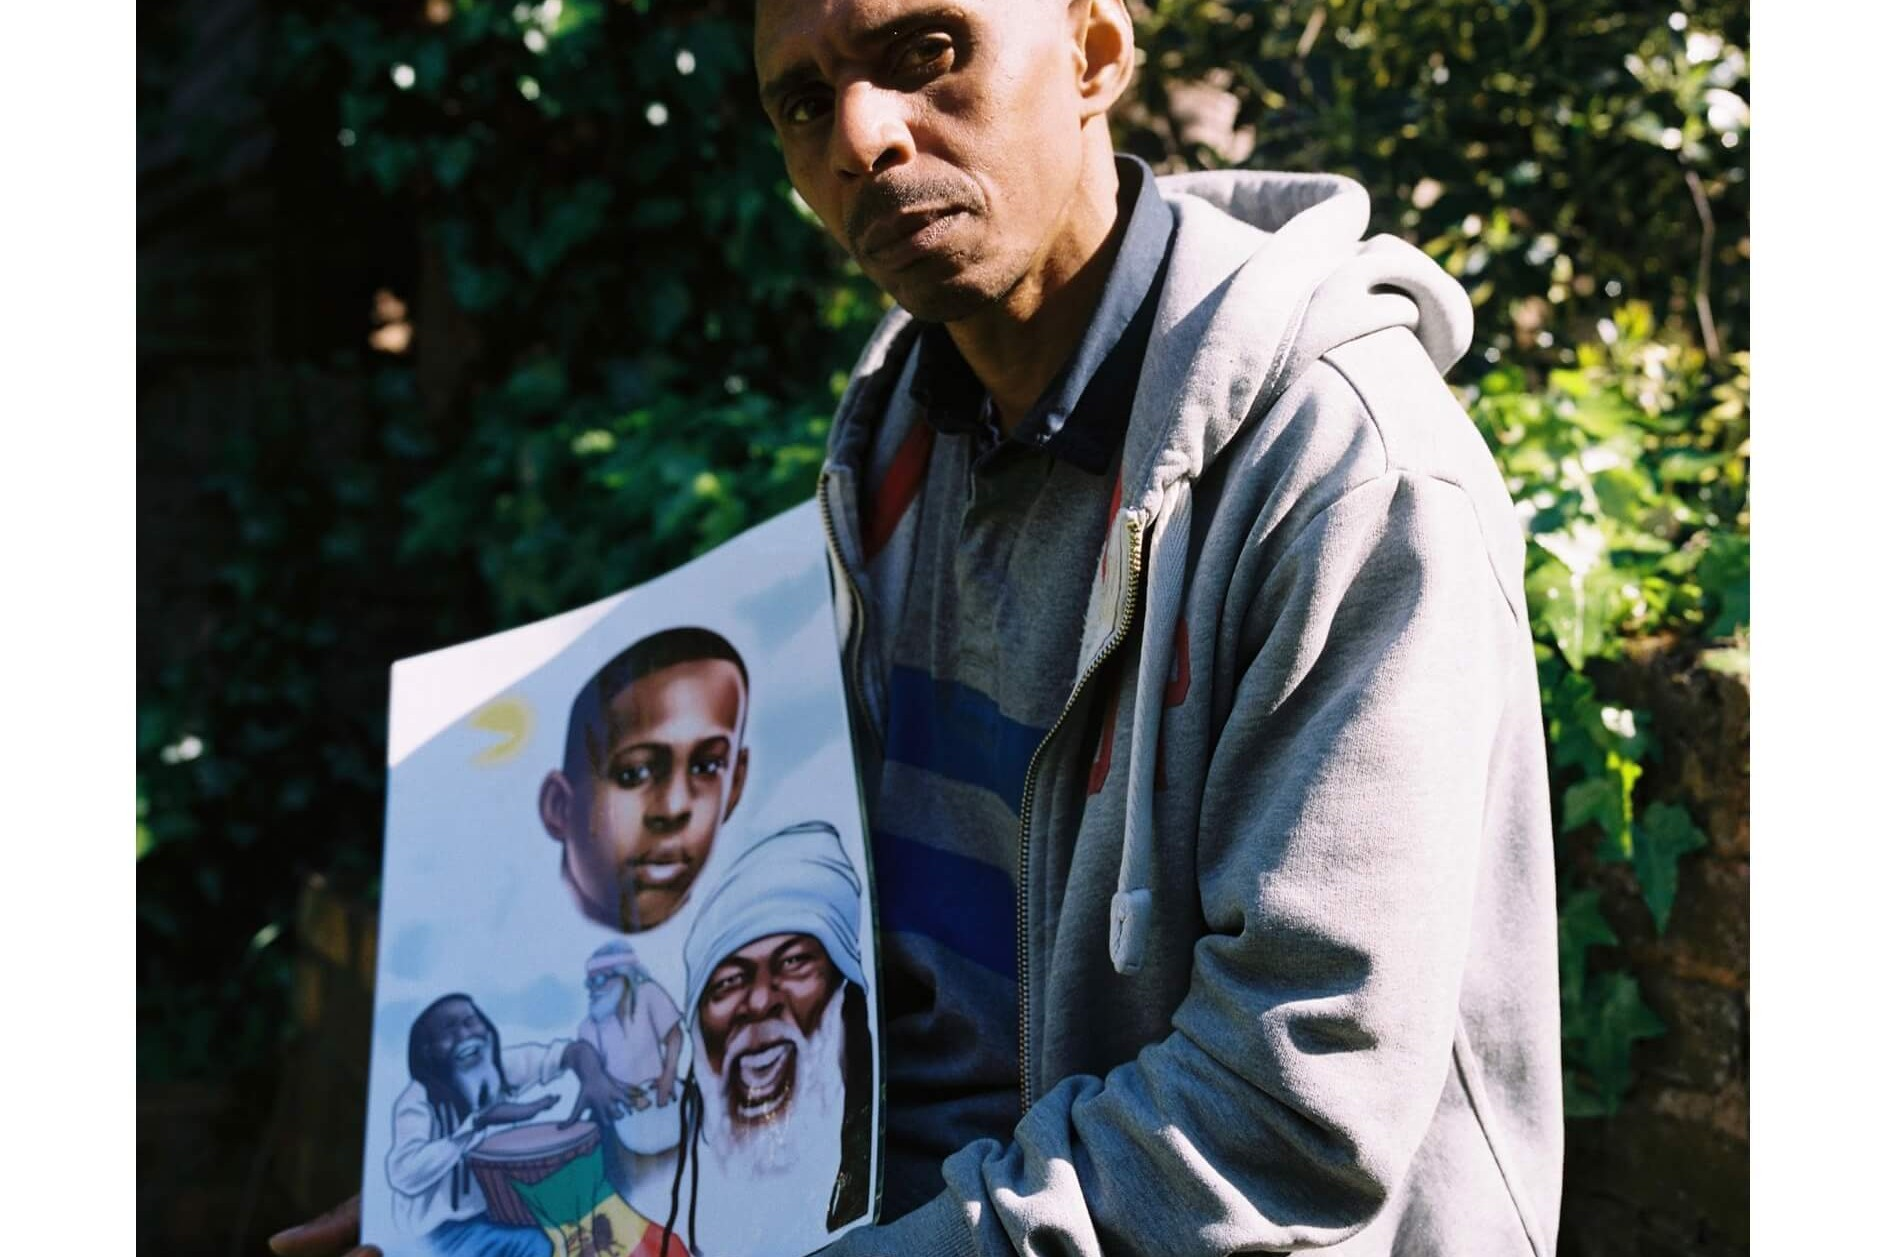 The South West Collective of photography Archie wells father holds photo of murdered son